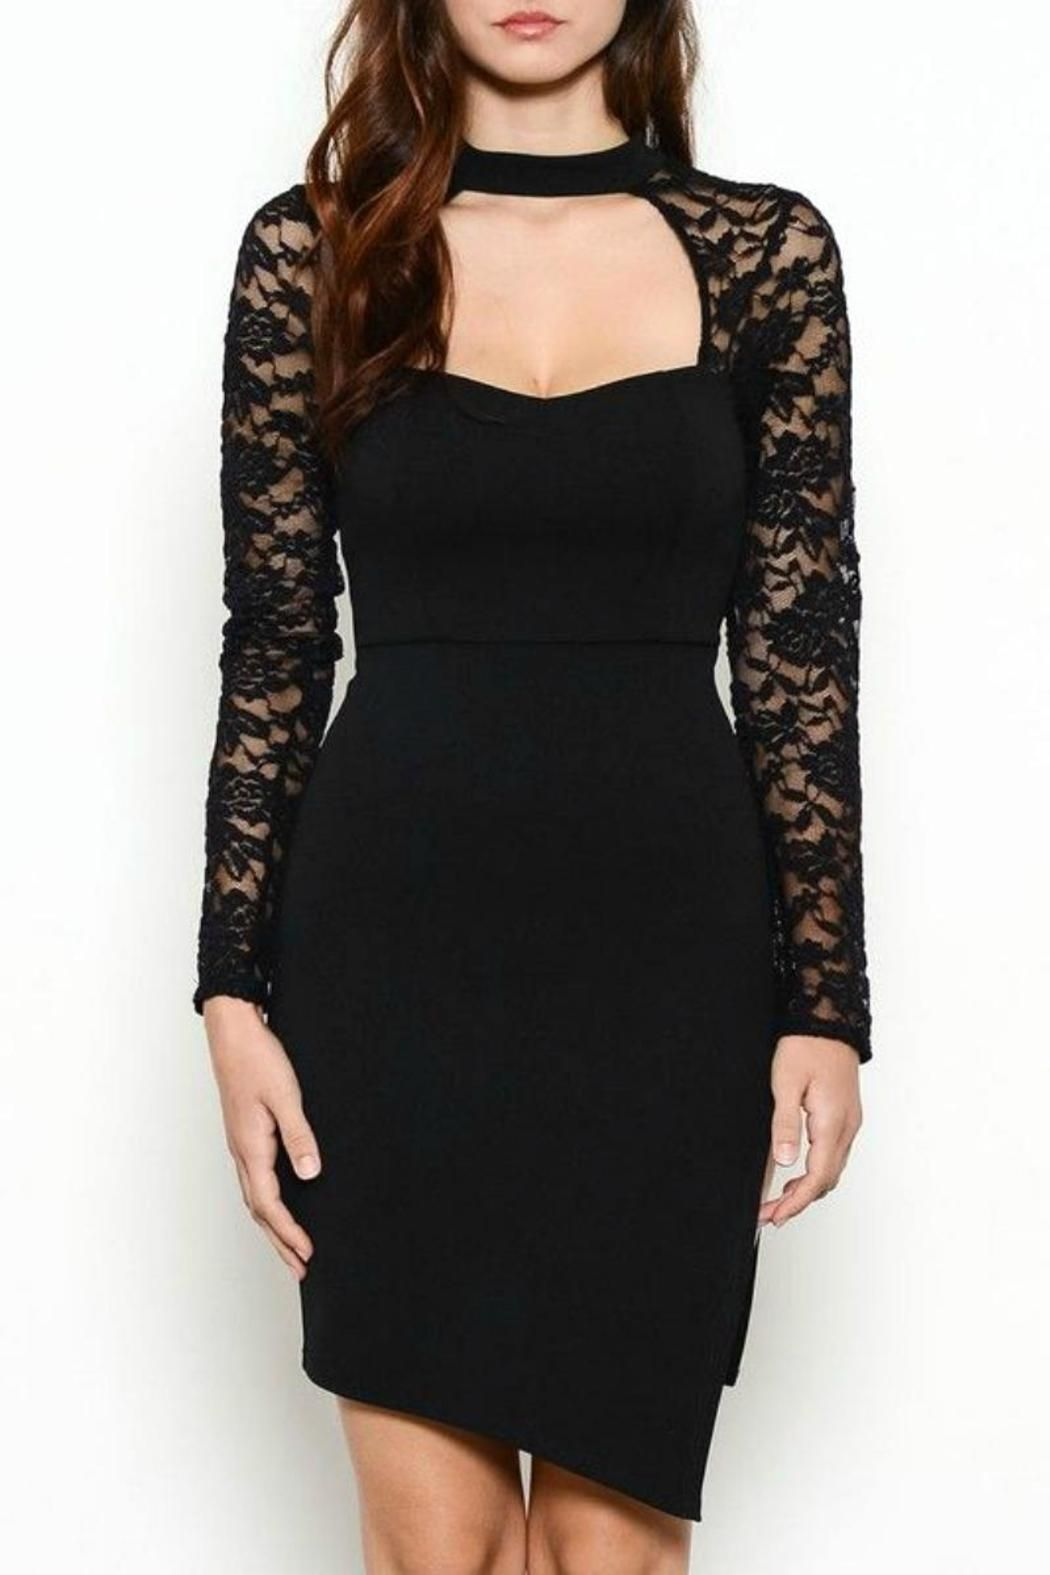 Lace black dress sexy a button and lace